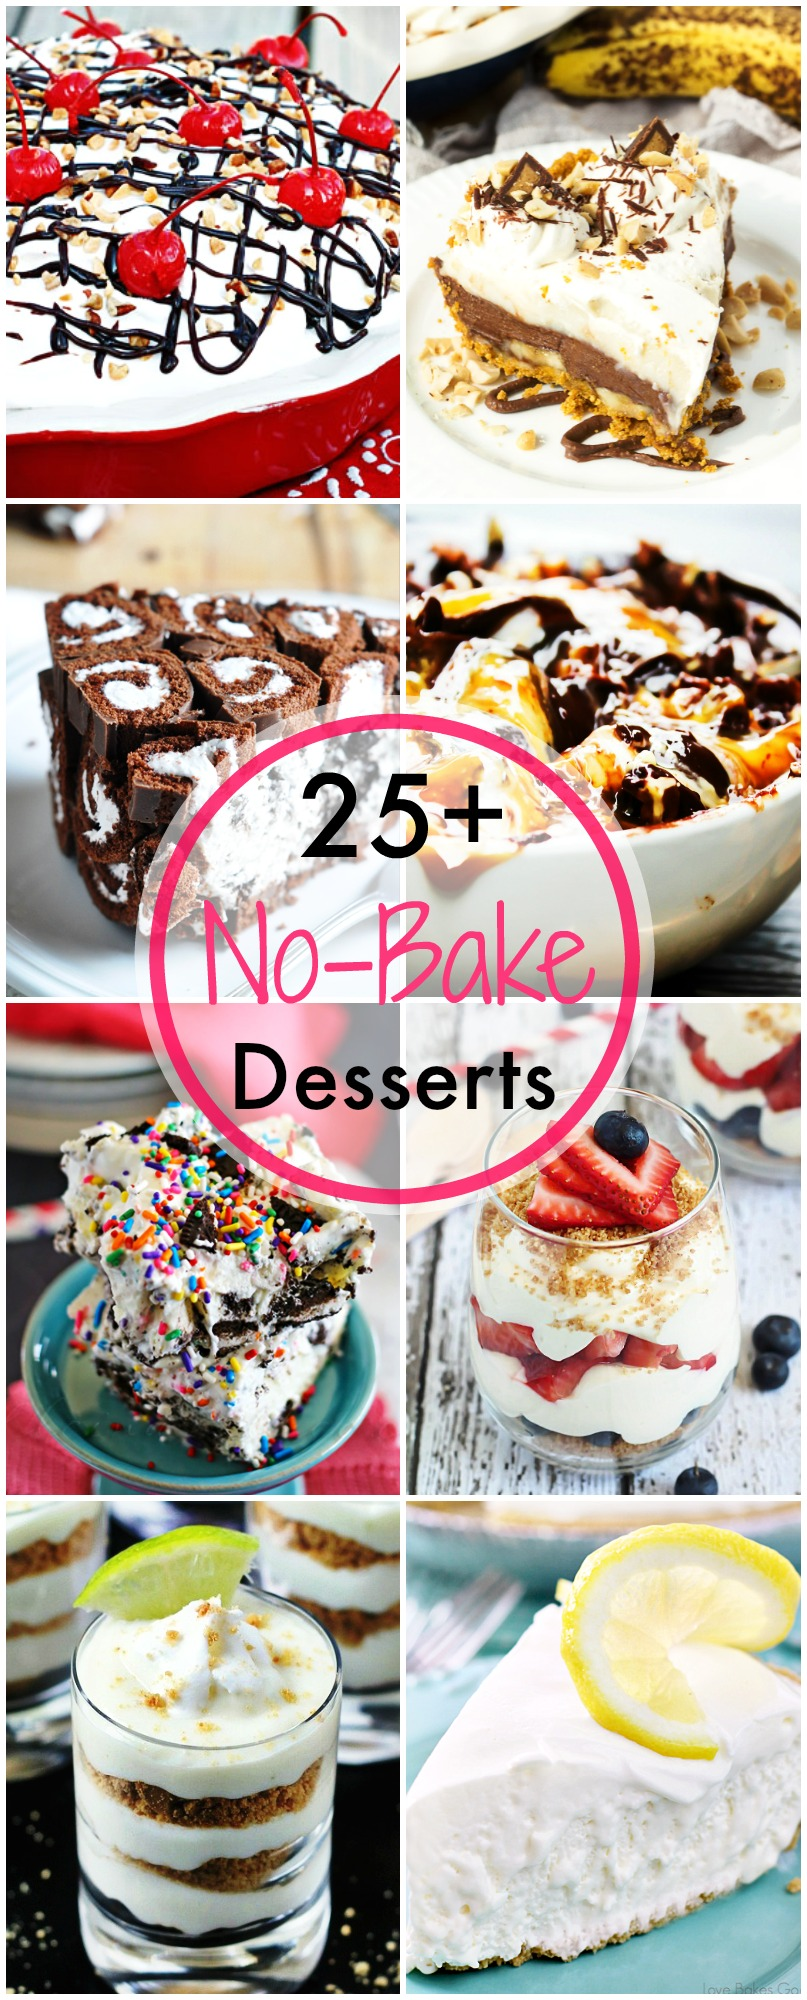 These 25+ NO BAKE DESSERTS FOR SUMMER are a great way to get your sweet tooth fix without having to turn on the oven!